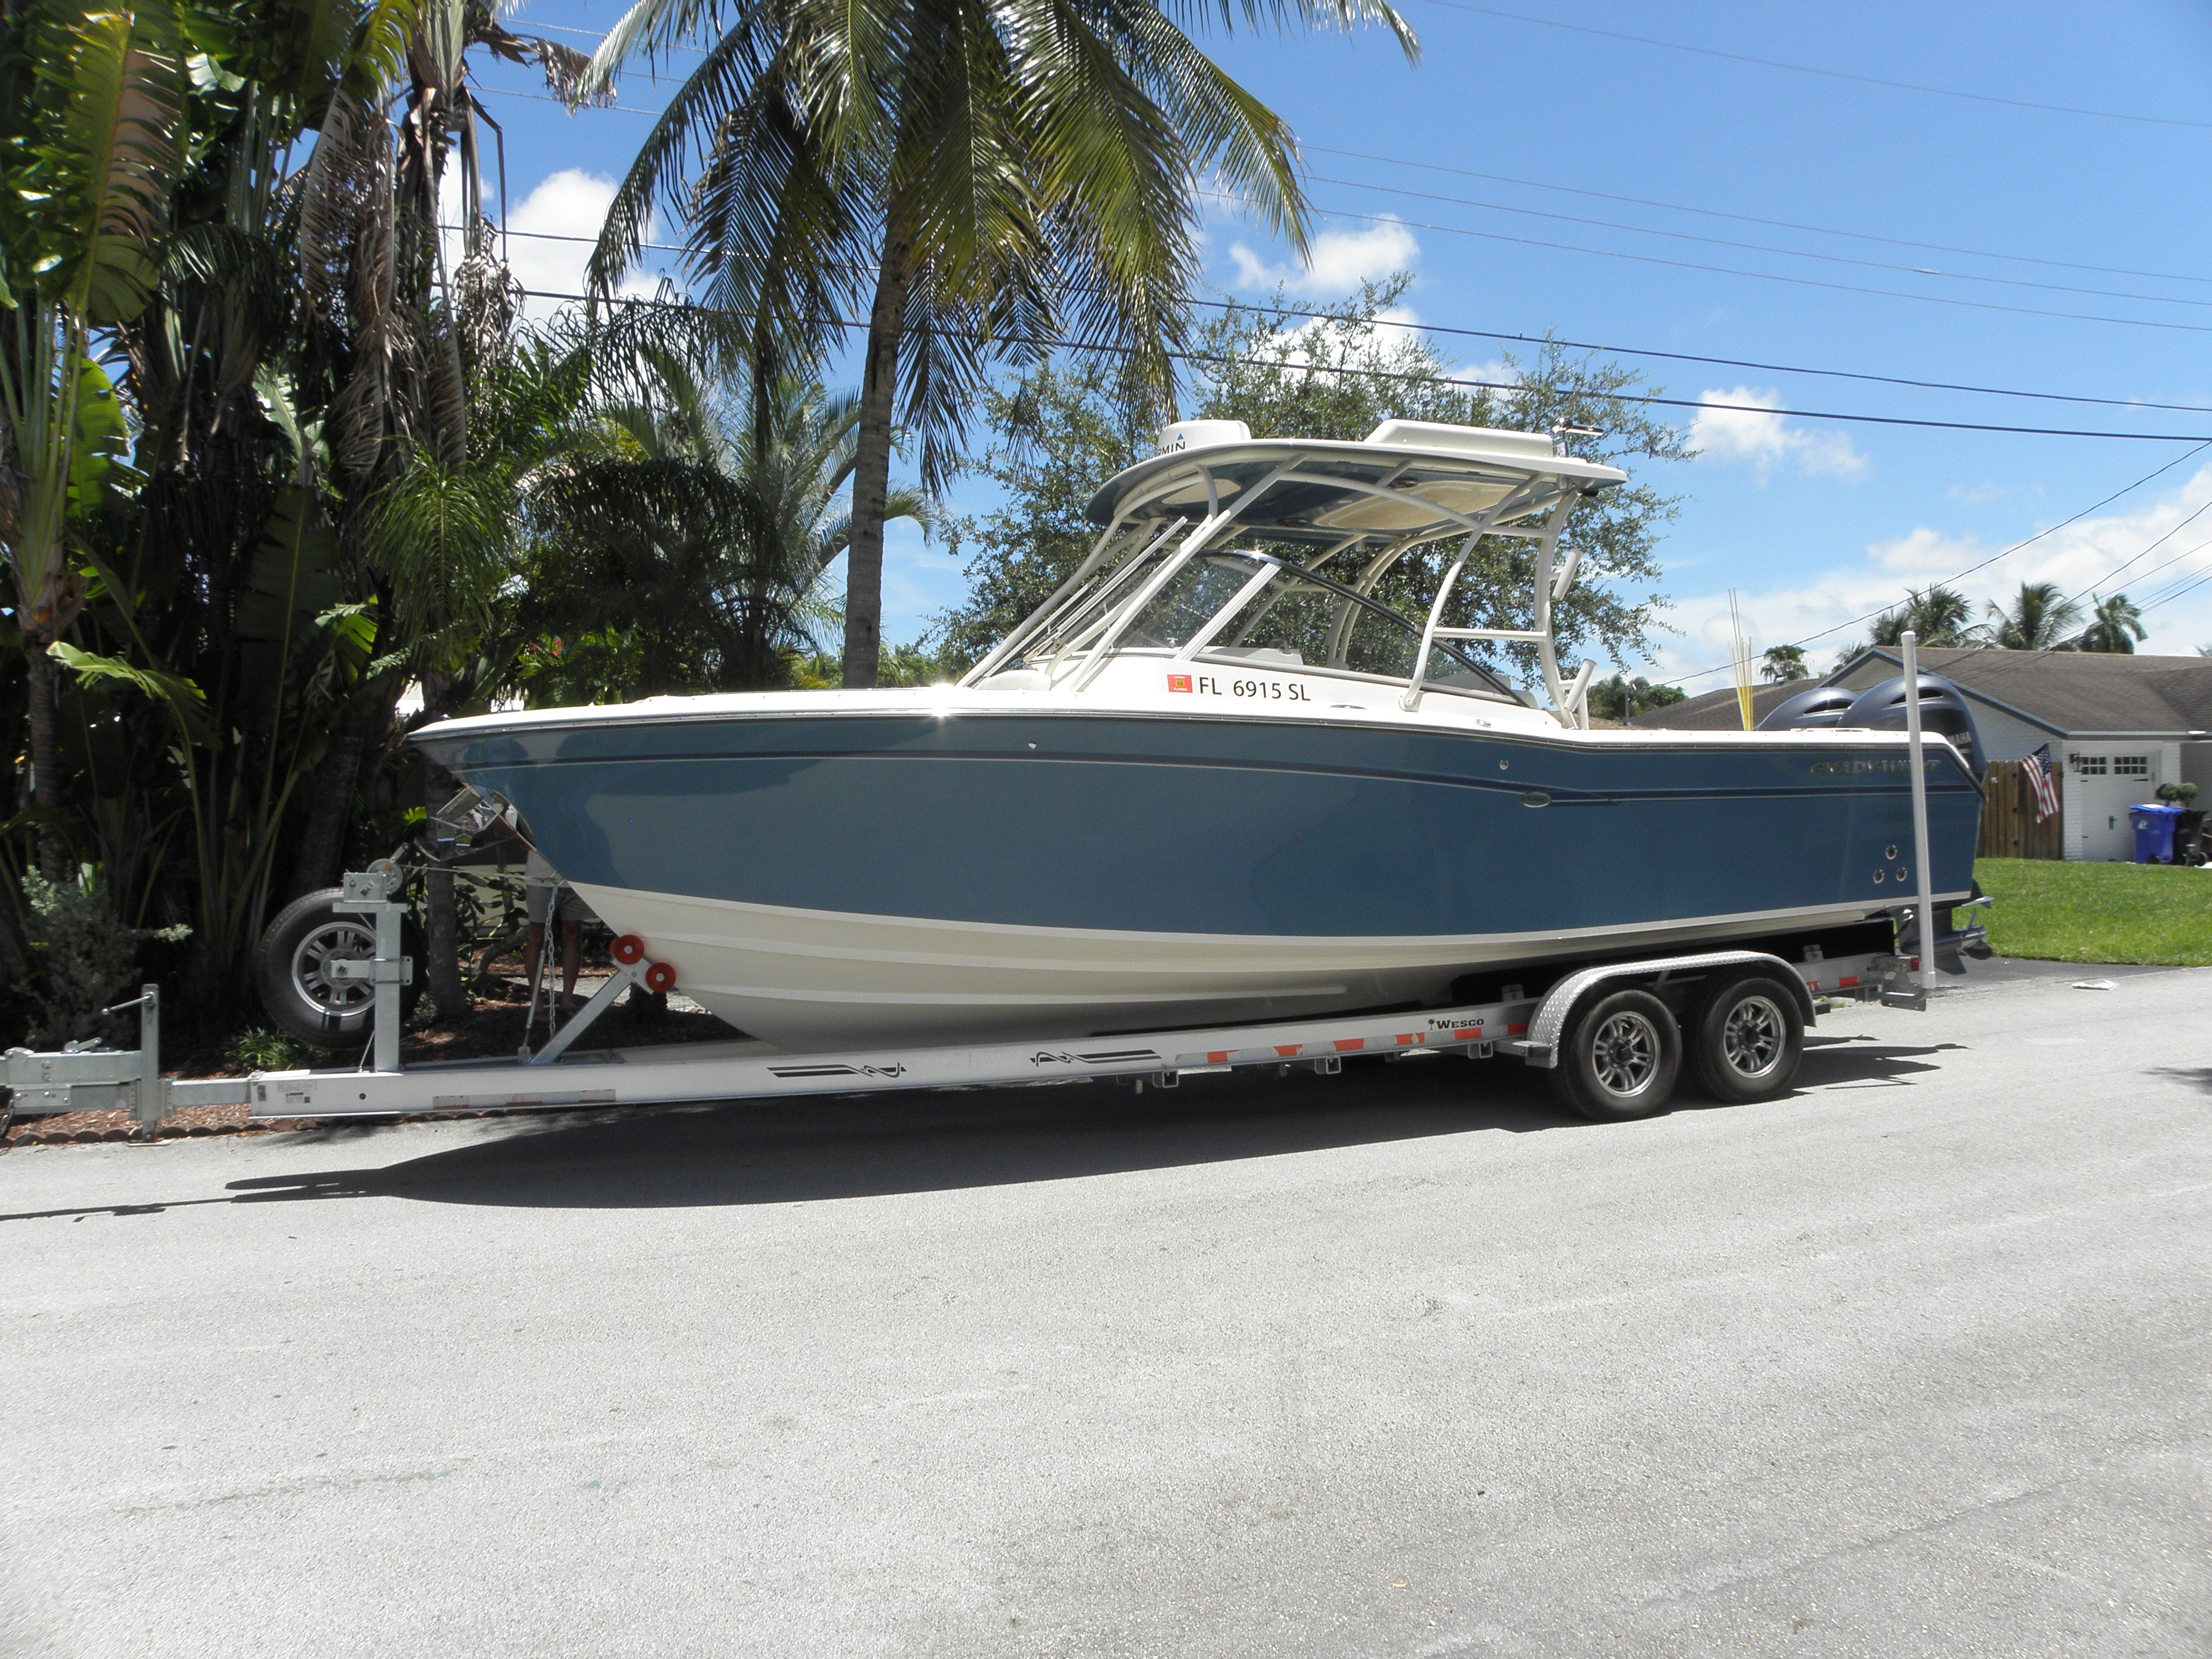 Bow Dodger I Boat Shade Marine Canopy The Element Dual Console Boat Center Console Boats Boat